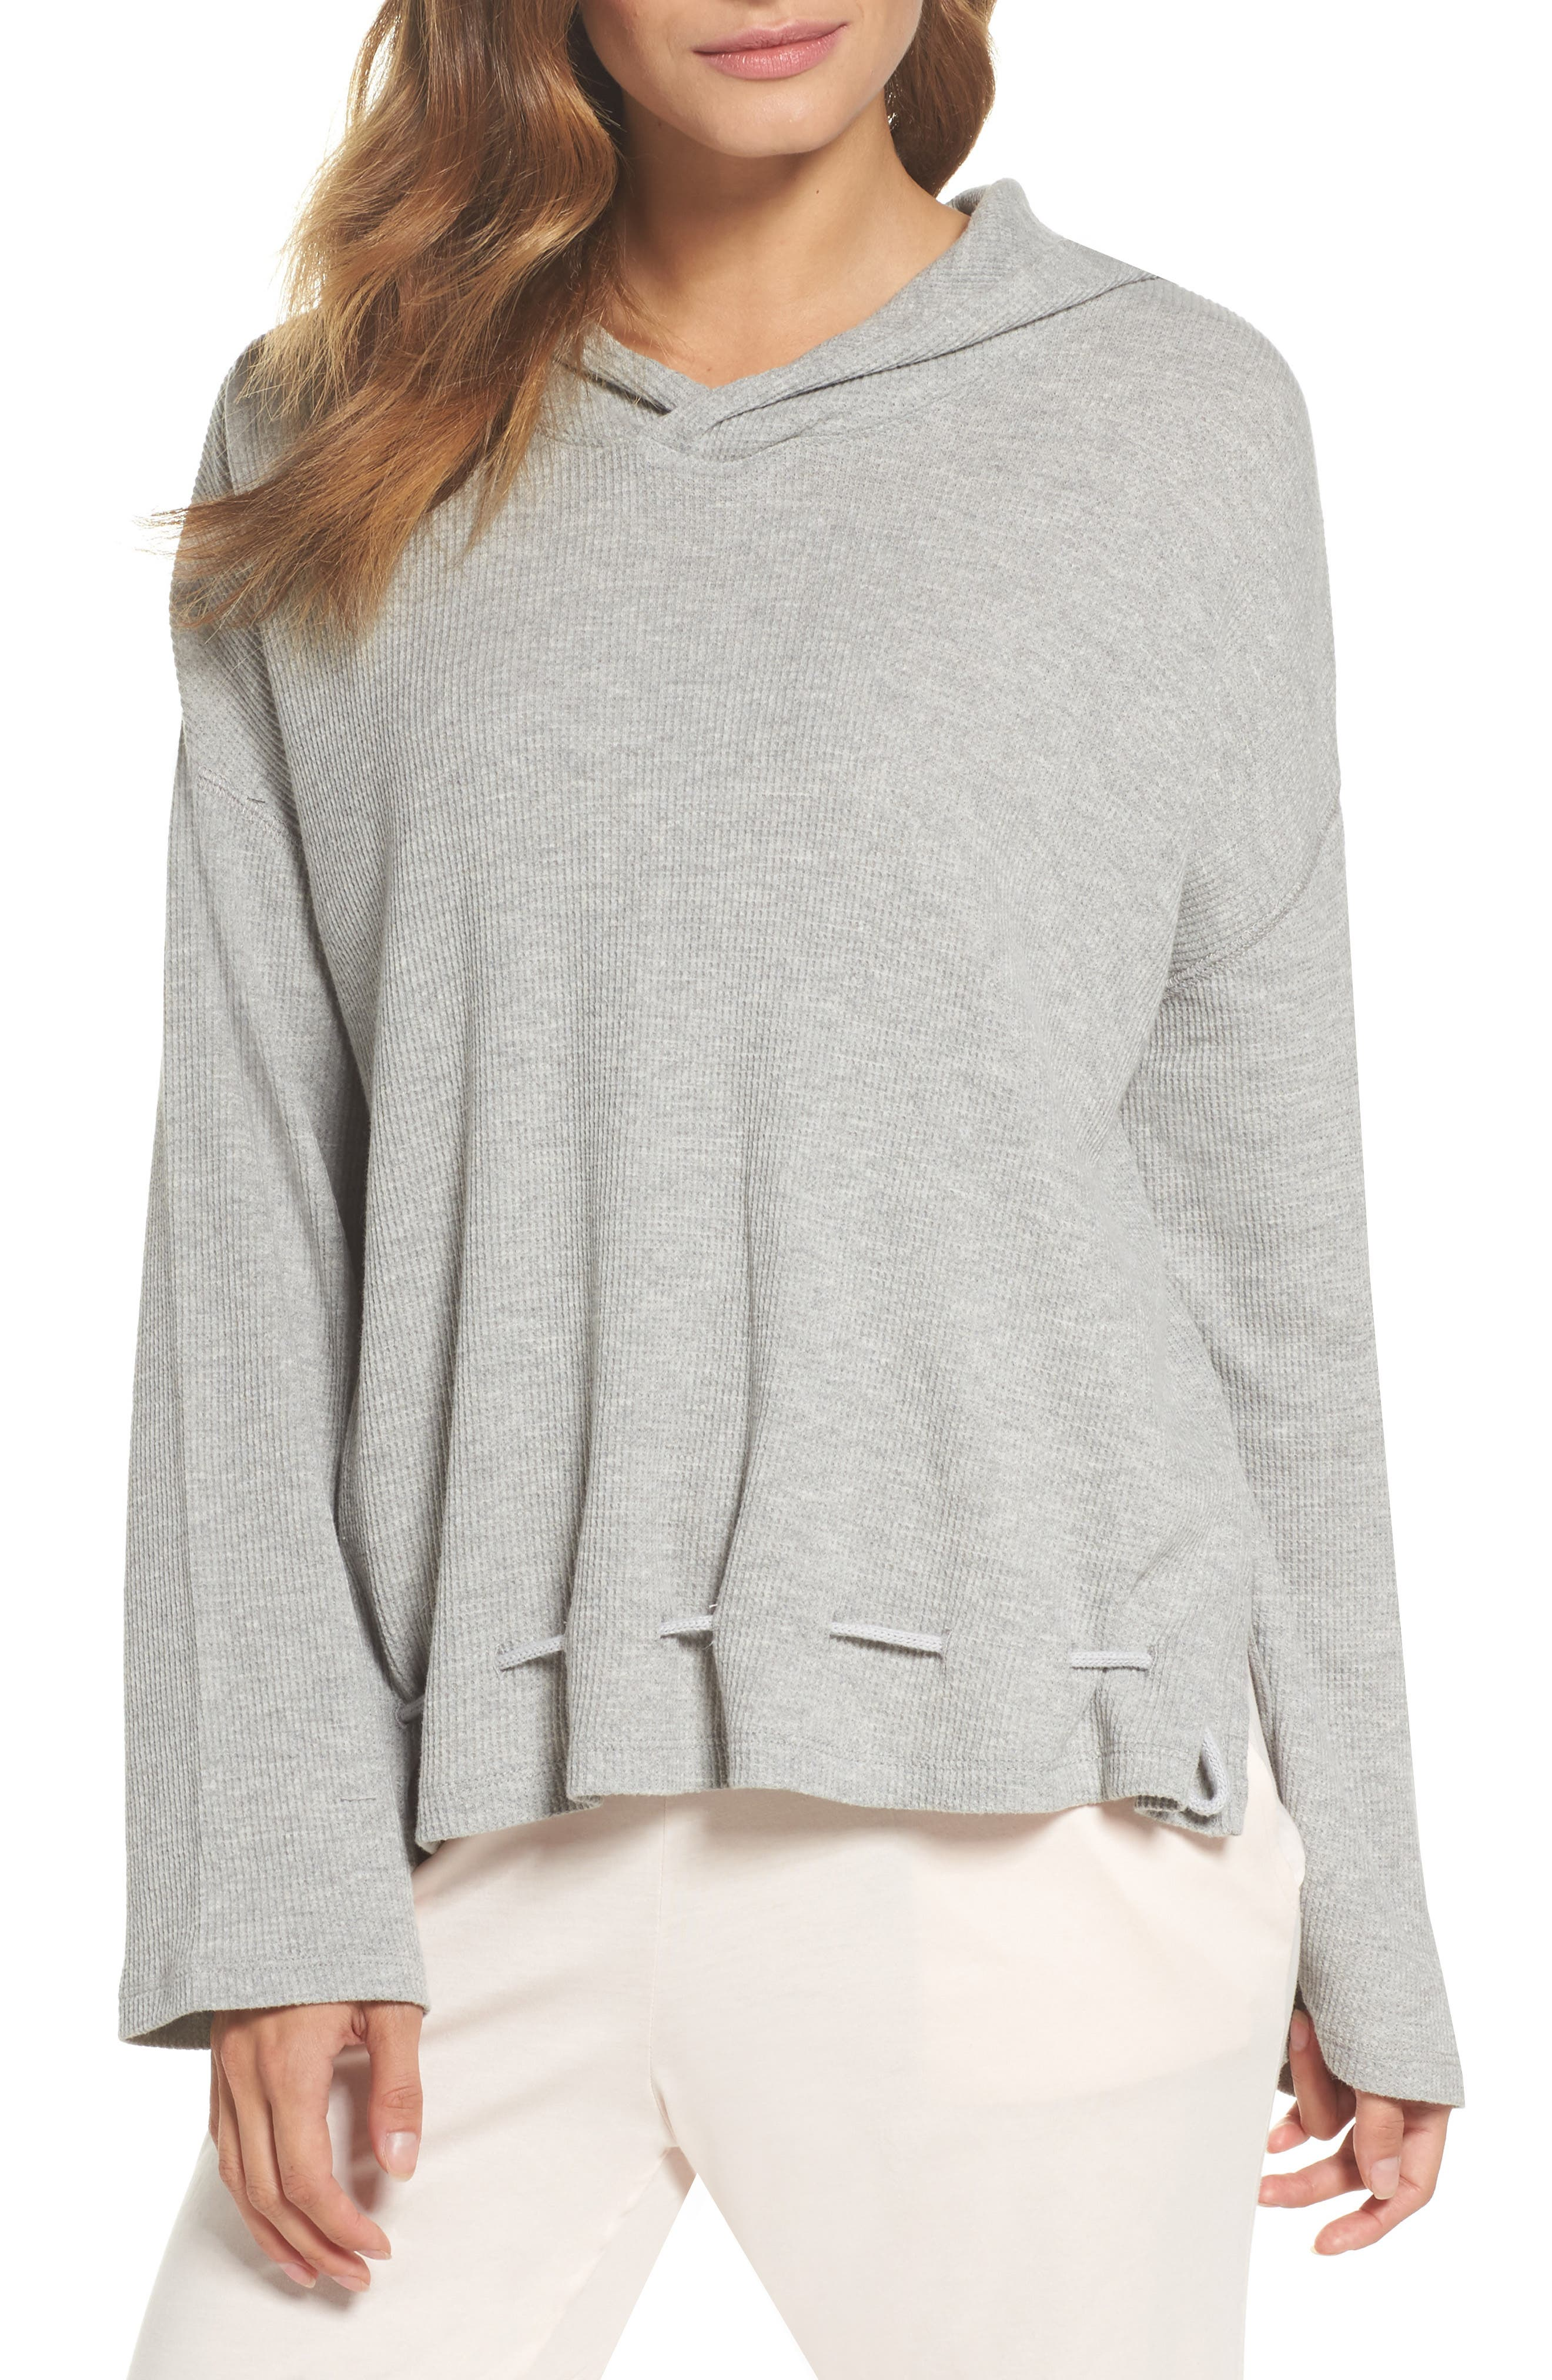 Thermal Hooded Top,                             Main thumbnail 1, color,                             Heather Grey